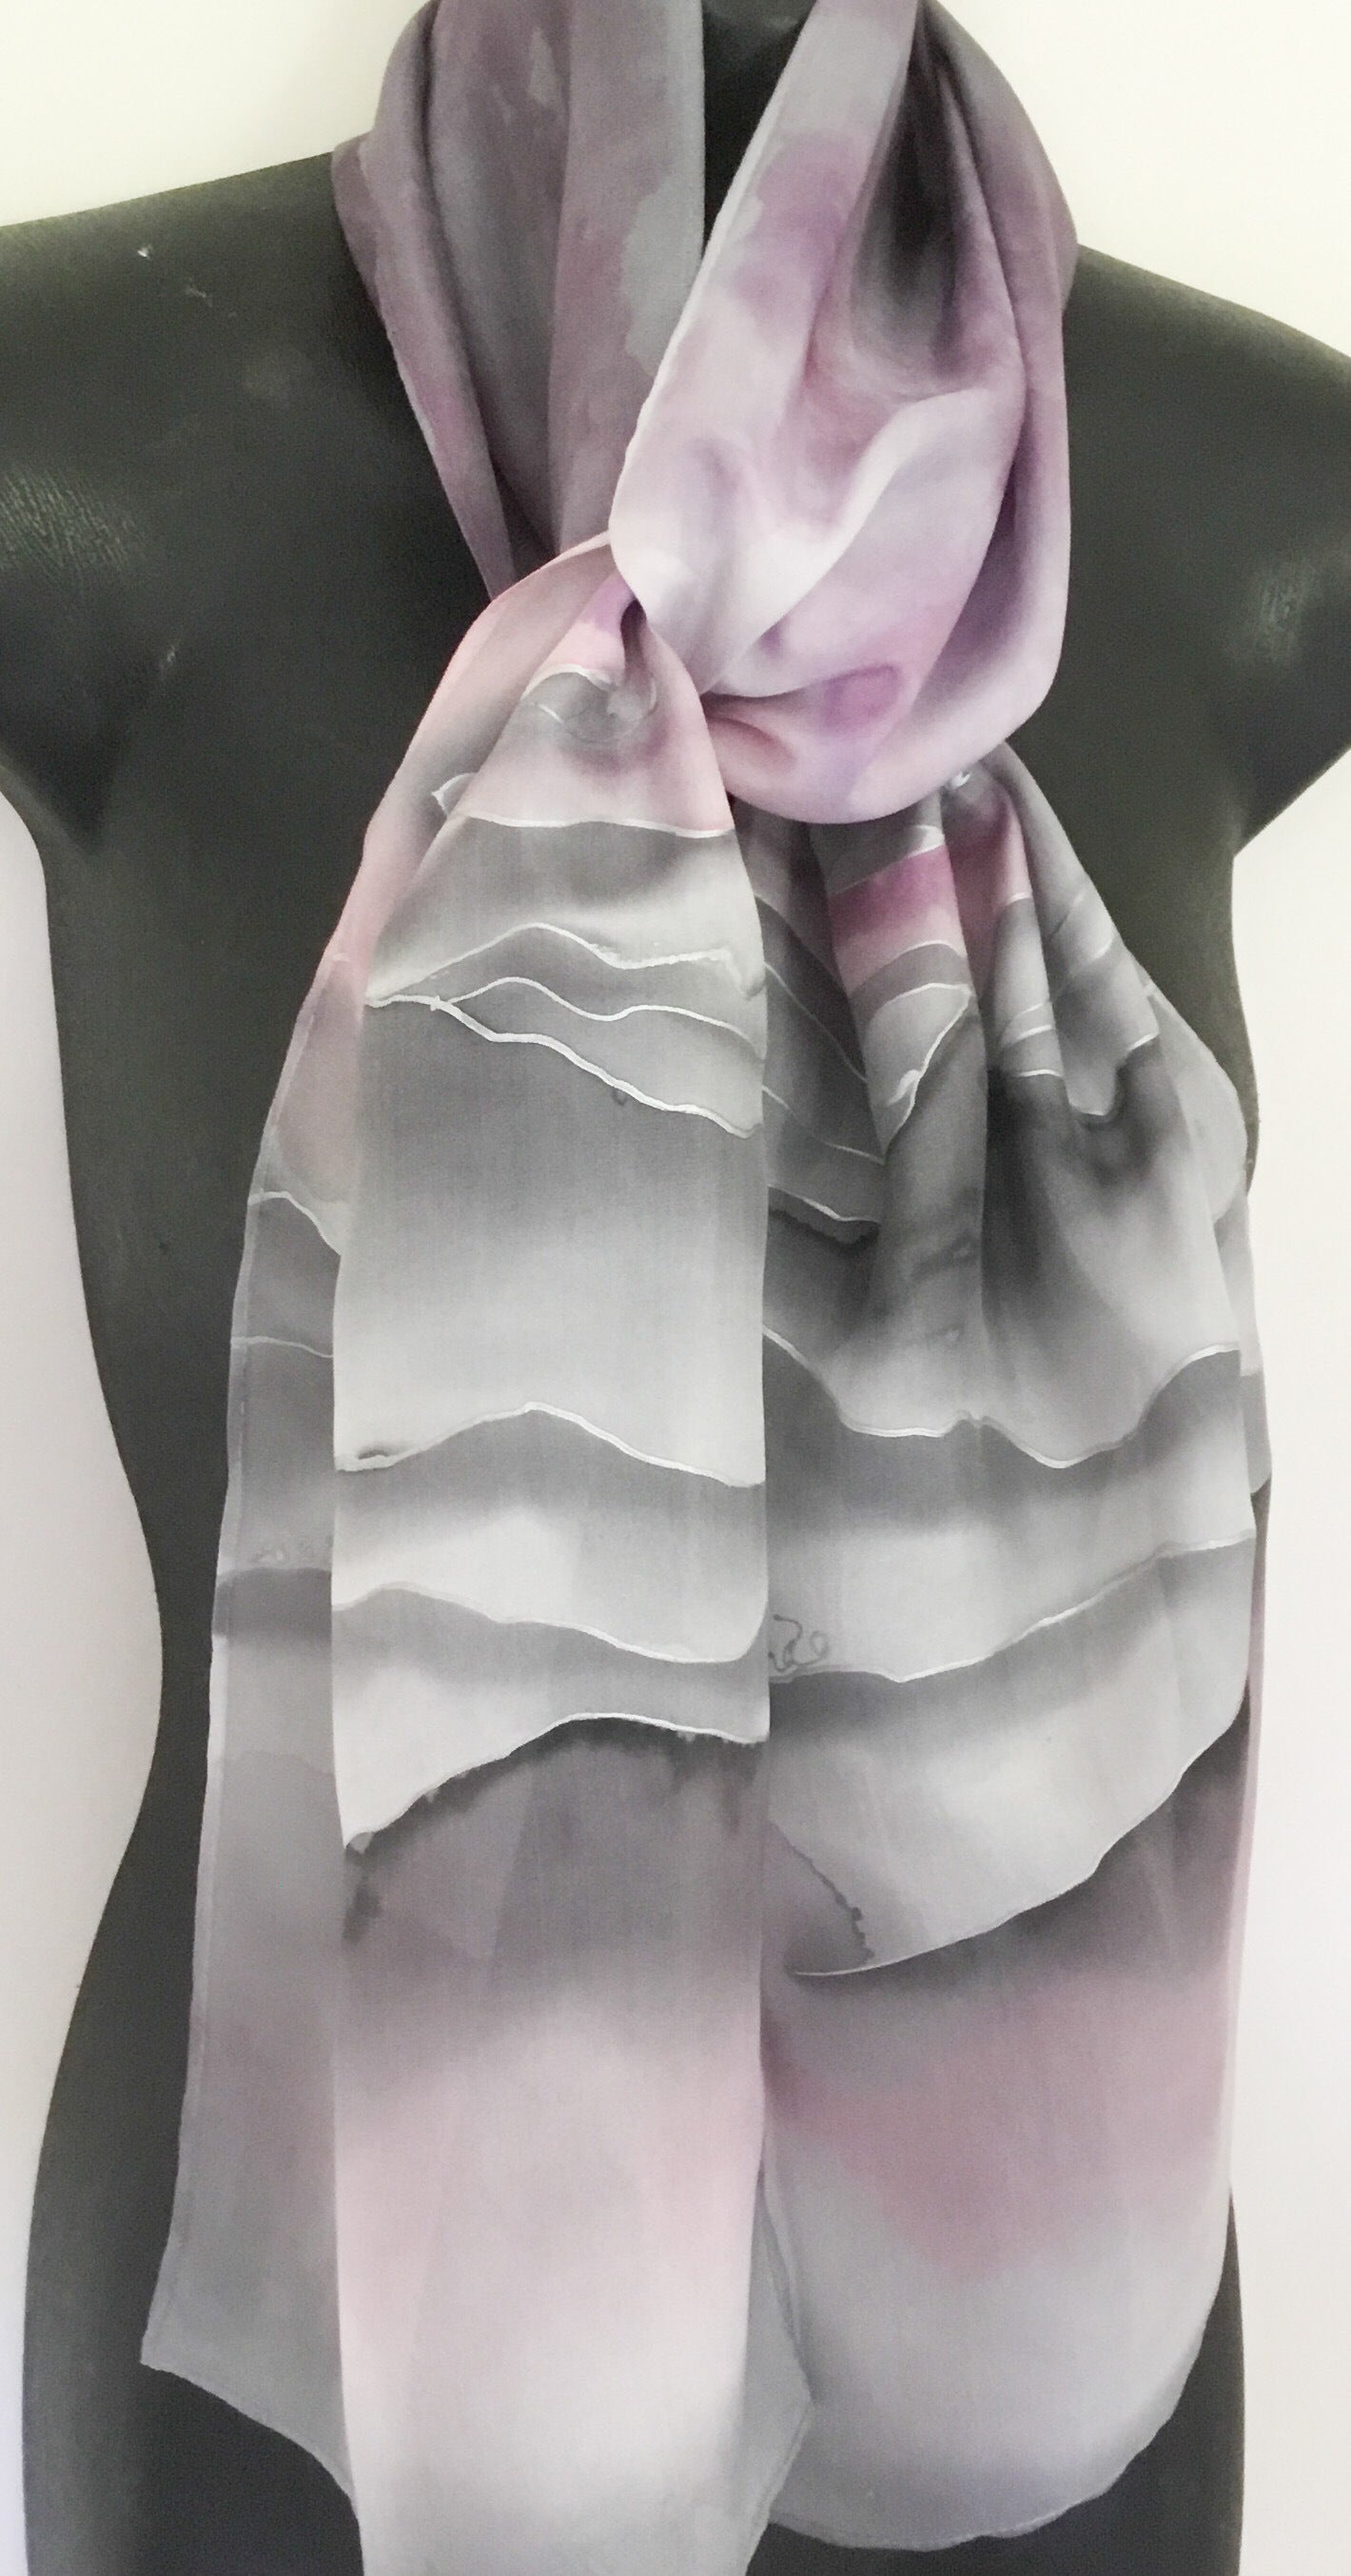 silver outlined stripes or hills on a grey and dusky pink silk scarf